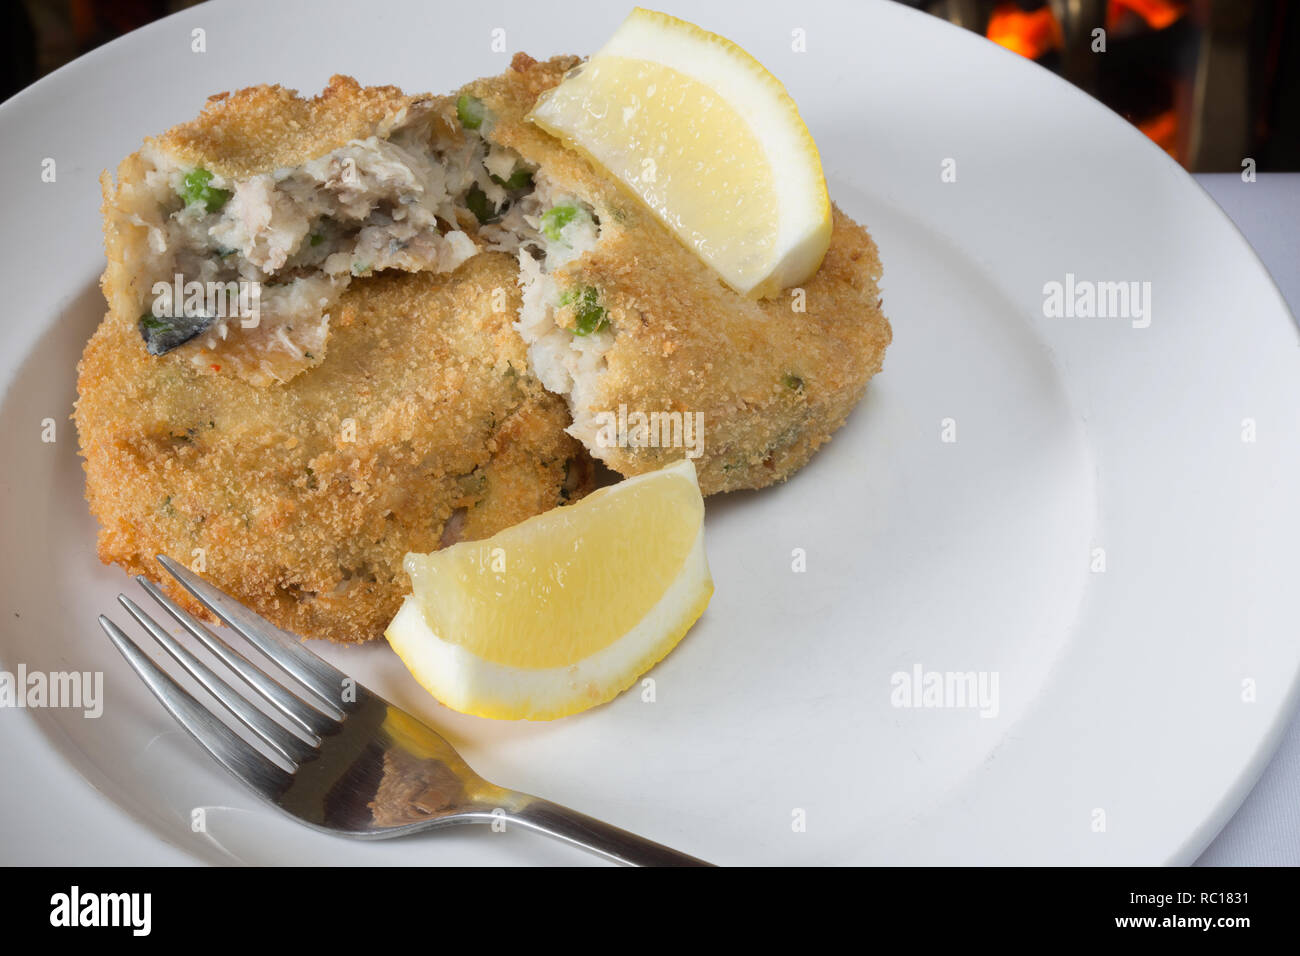 Homemade Breaded Mackerel and pea fishcake with Lemon wedge garnish - Stock Image